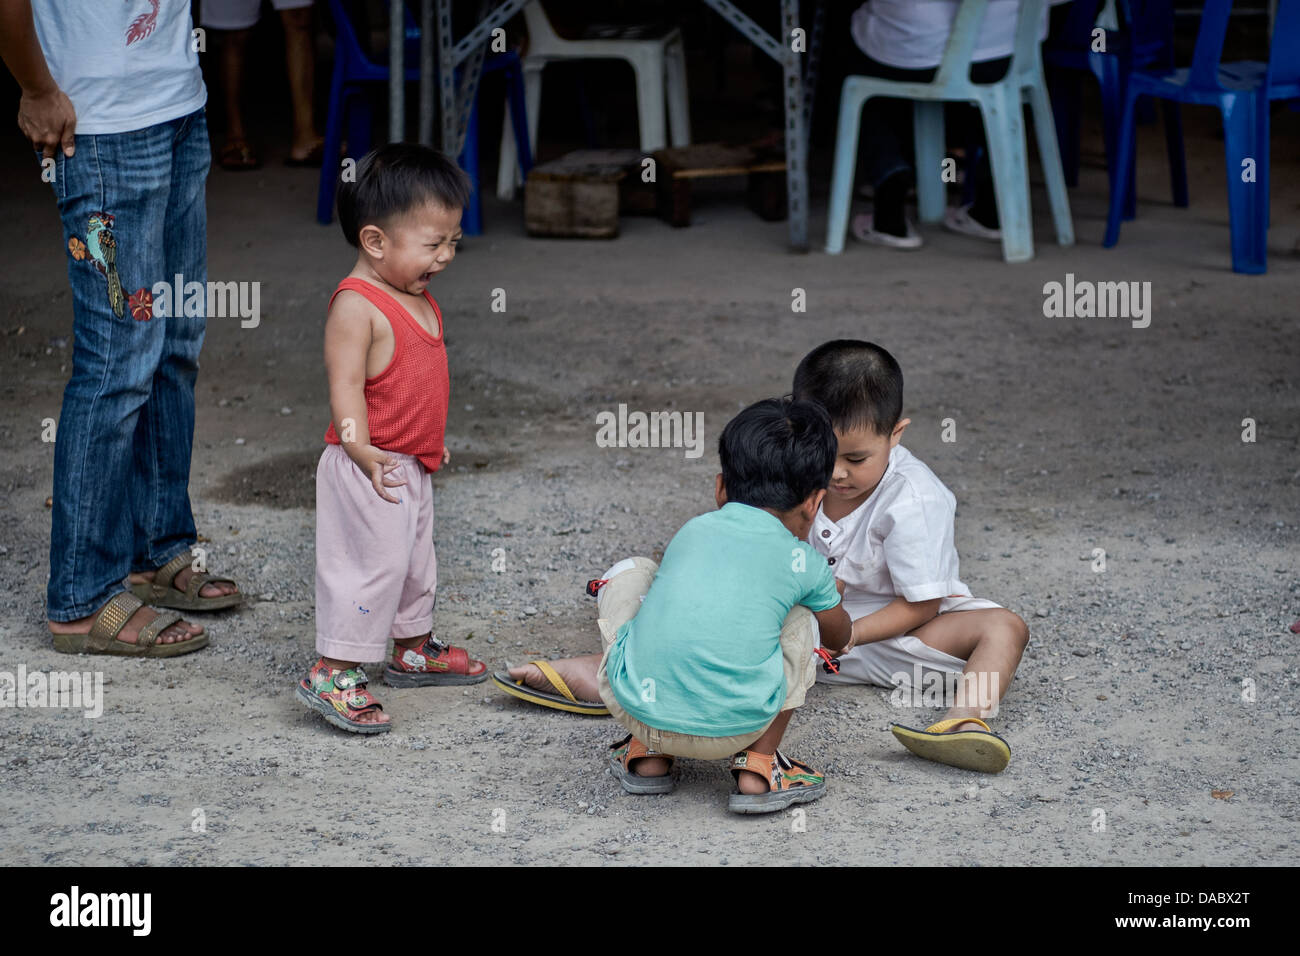 Amusing image of an irate and angry child showing his frustration when not involved in friends games. Thailand S. - Stock Image